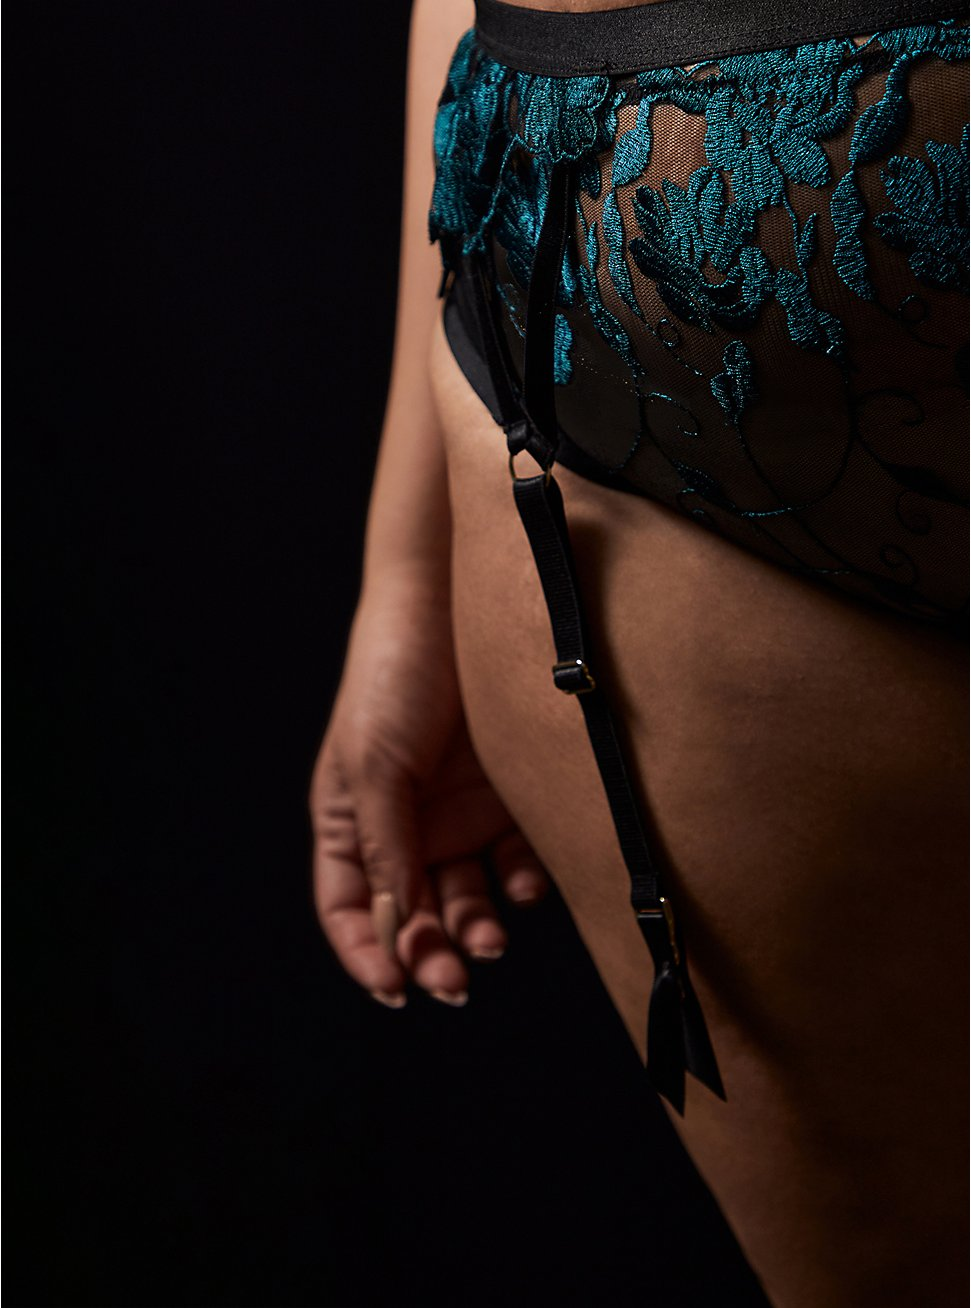 Black & Teal Embroidered Mesh Garter Belt, REFLECTING POND, hi-res